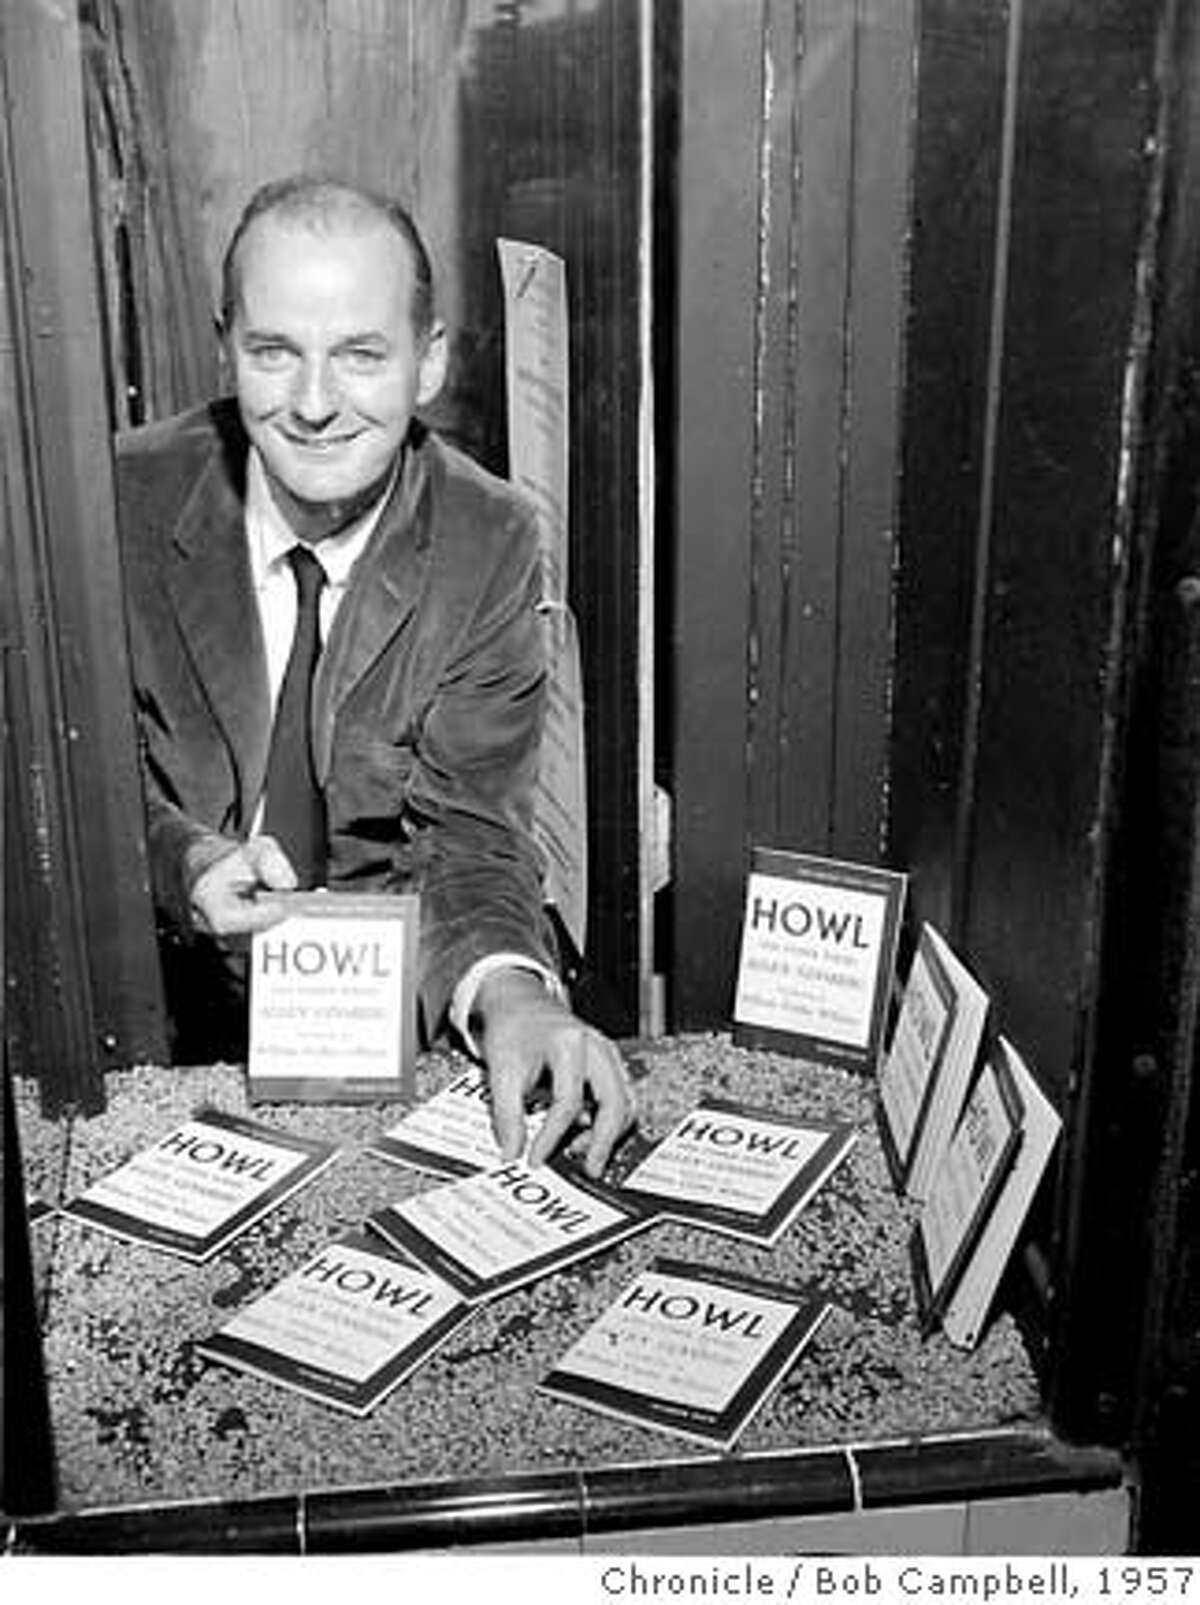 Lawrence Fehlinghetti, during the Howl Magazine case. Photo by Bob Campbell